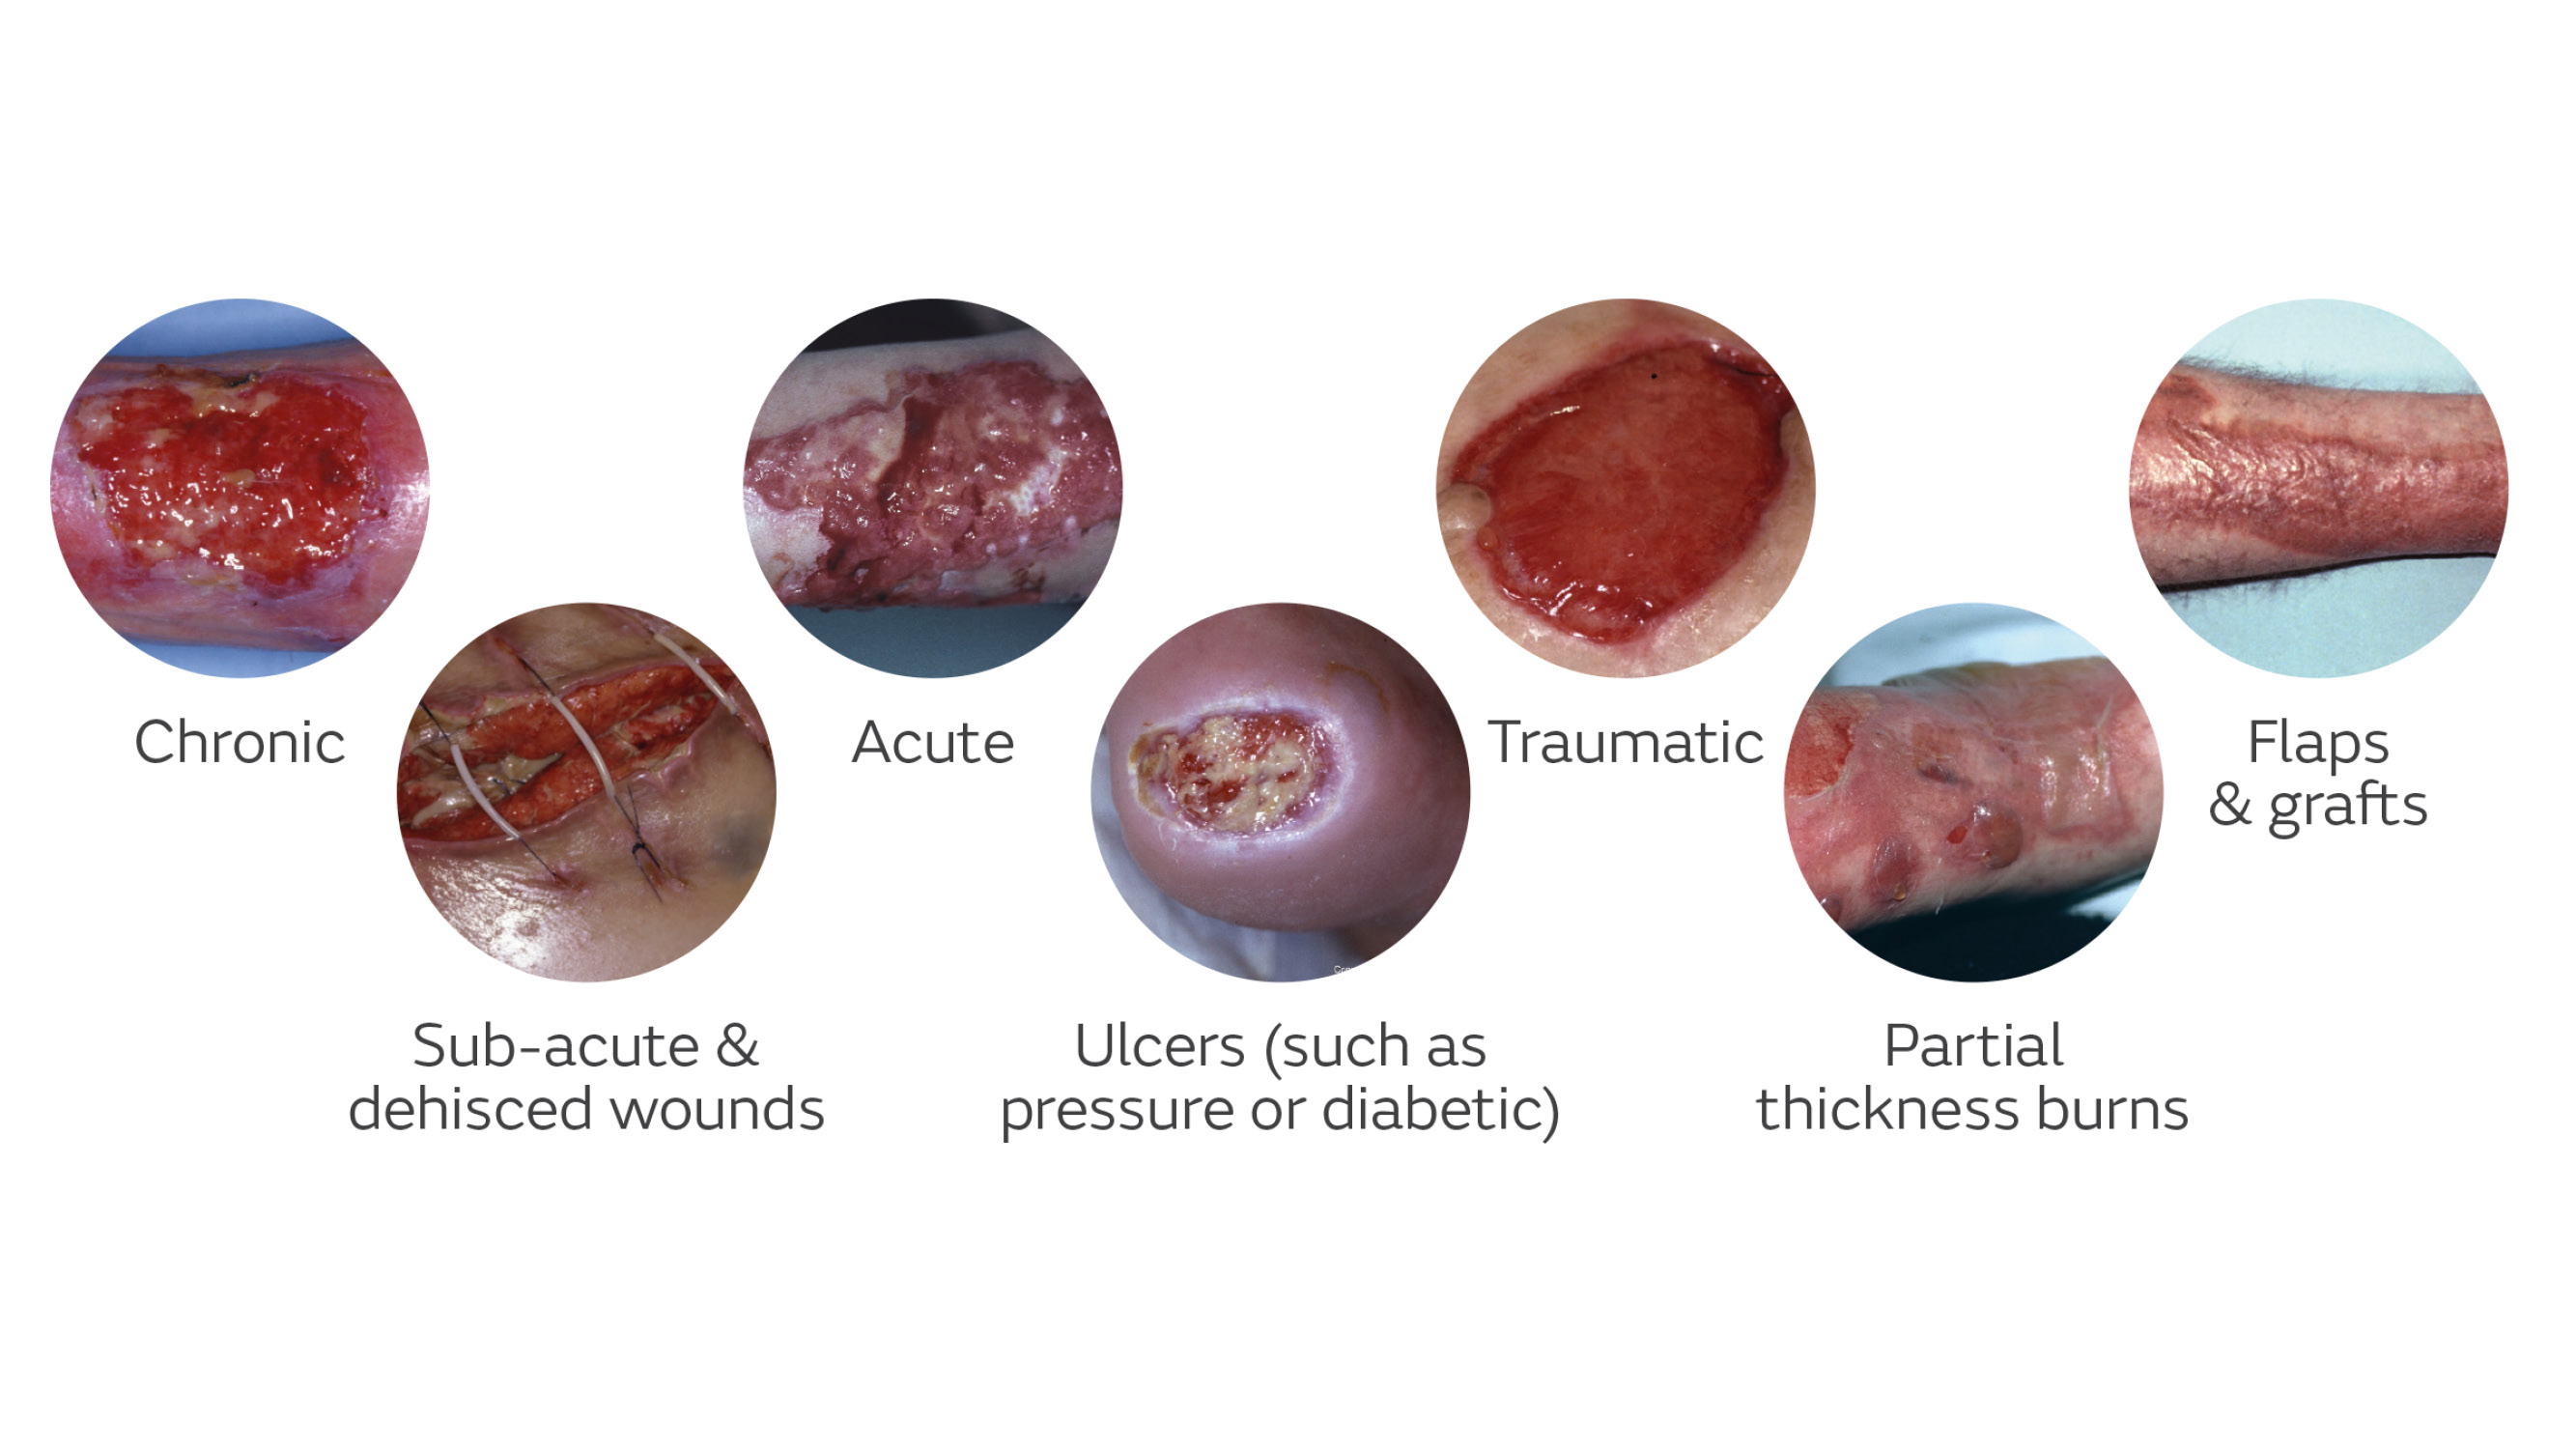 wounds that are suitable for NPWT or wound VAC